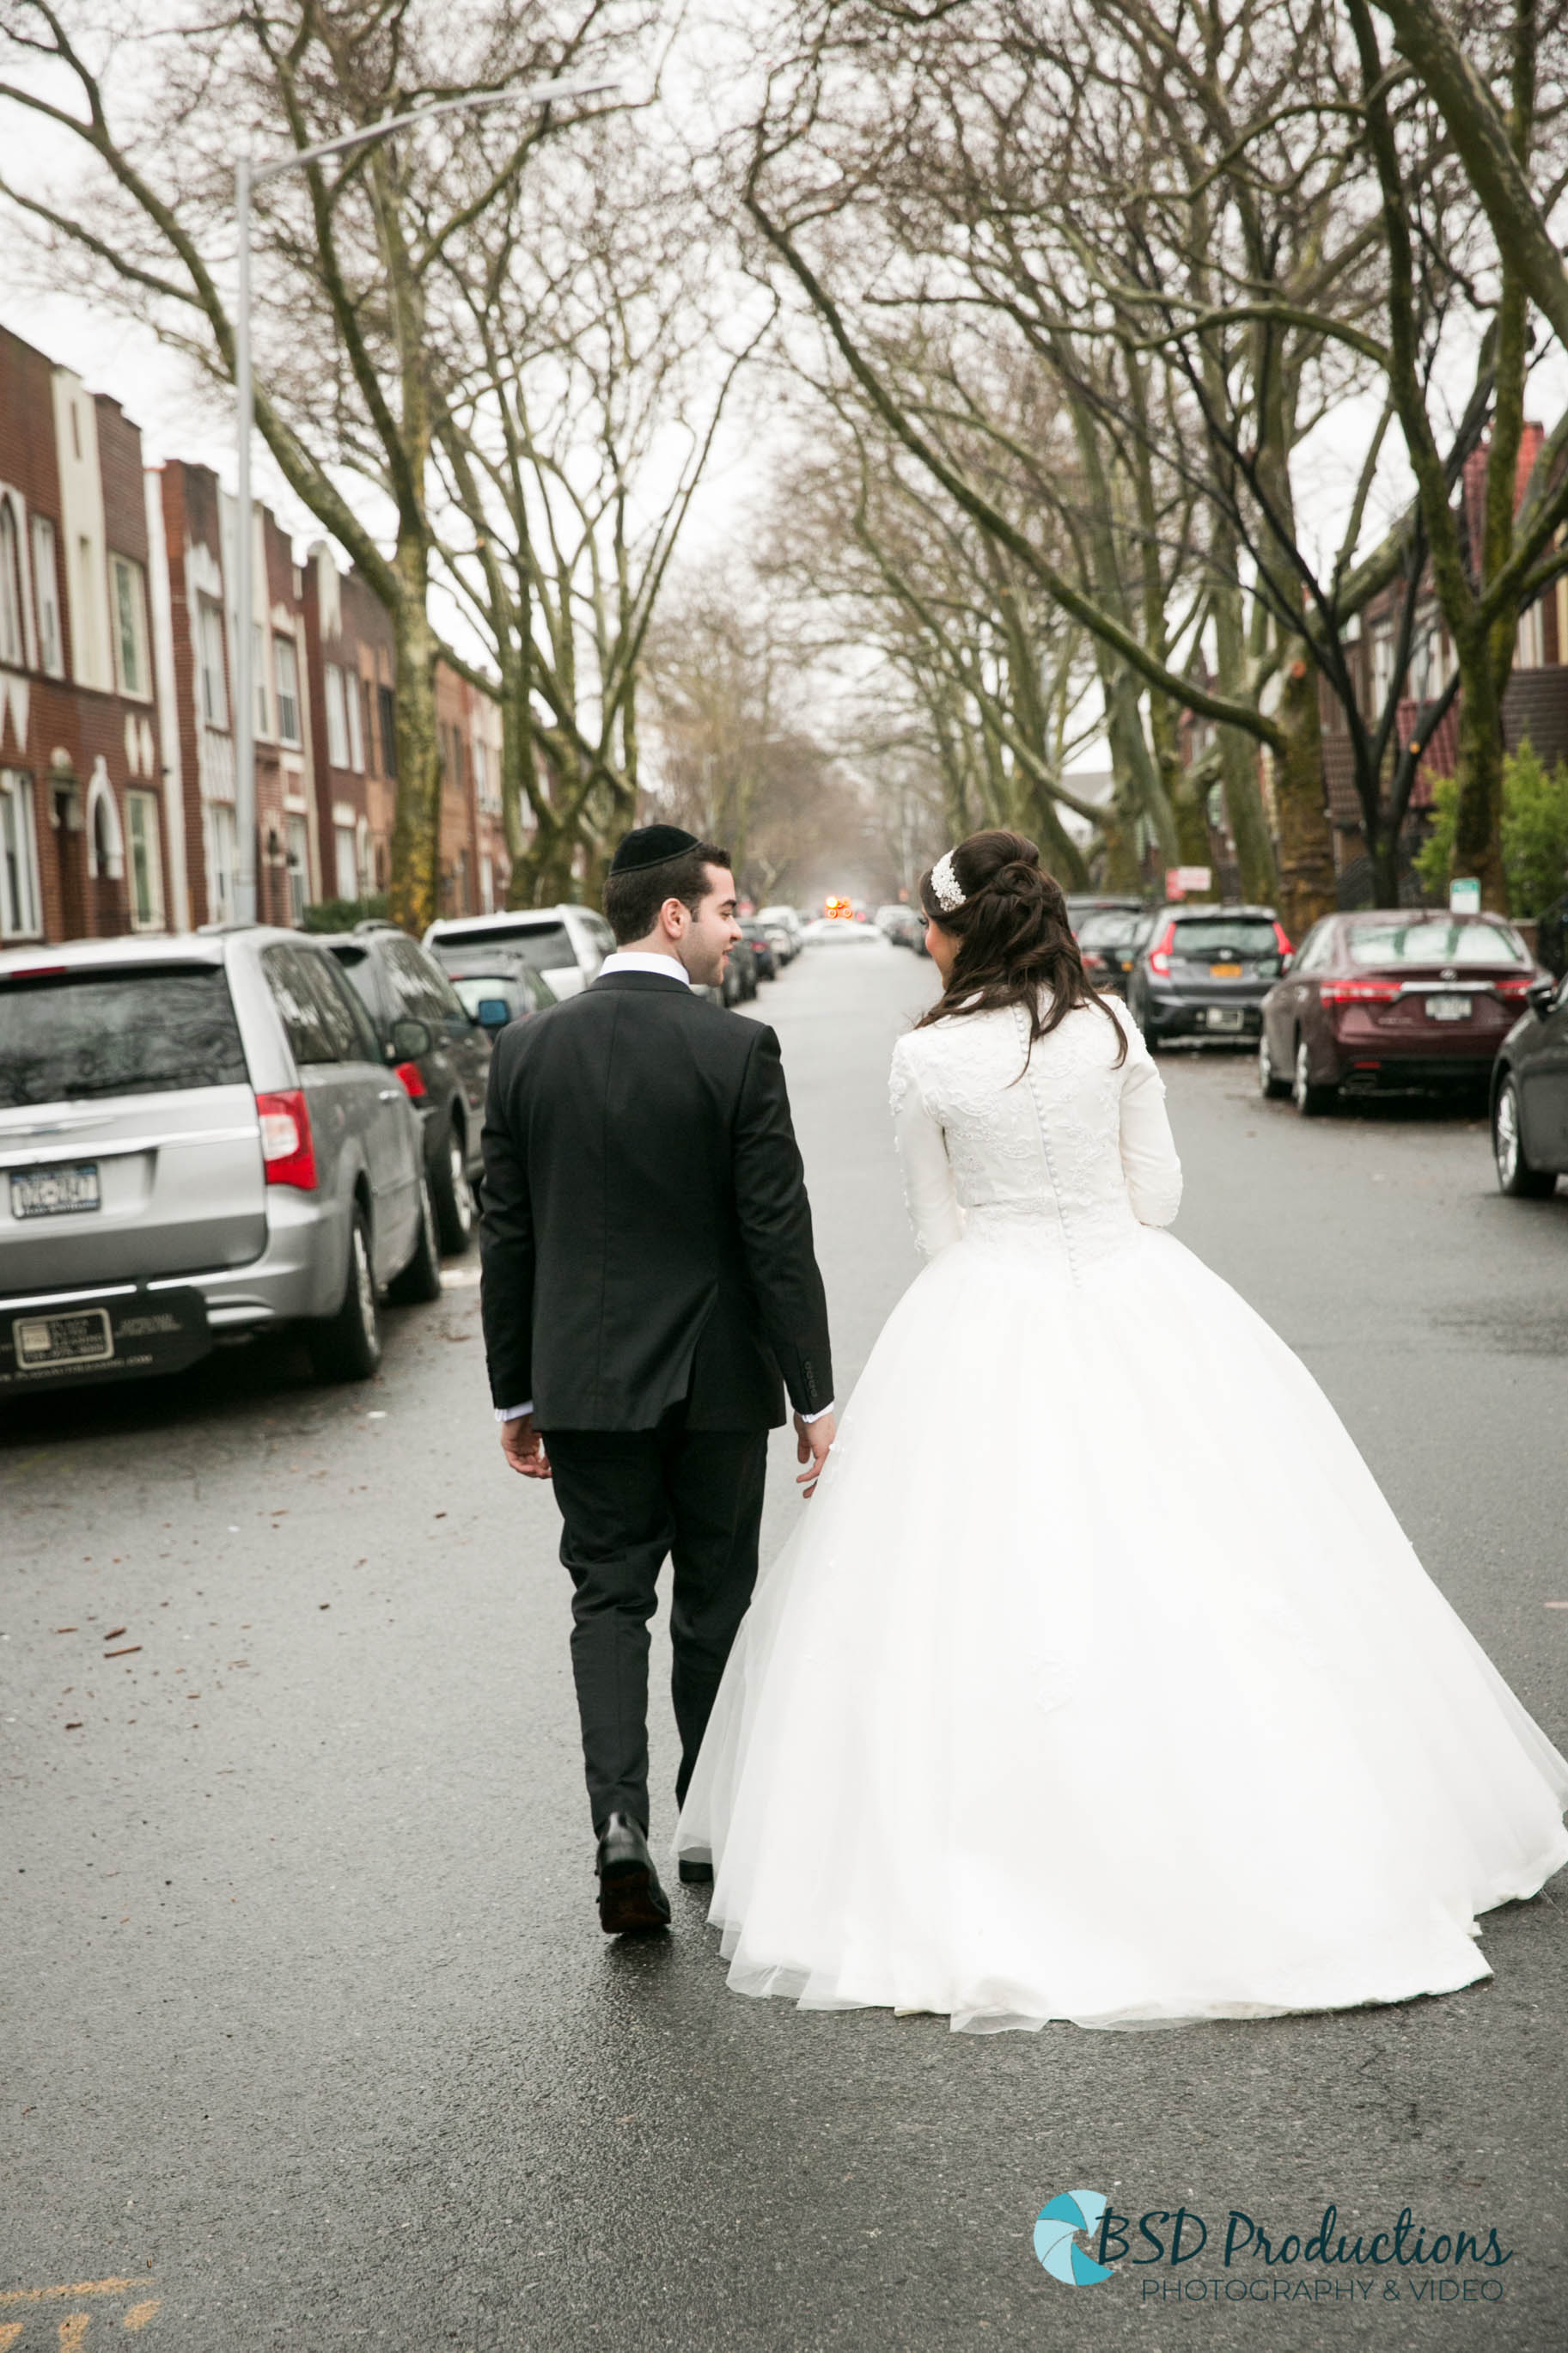 UH5A0398 Wedding – BSD Productions Photography